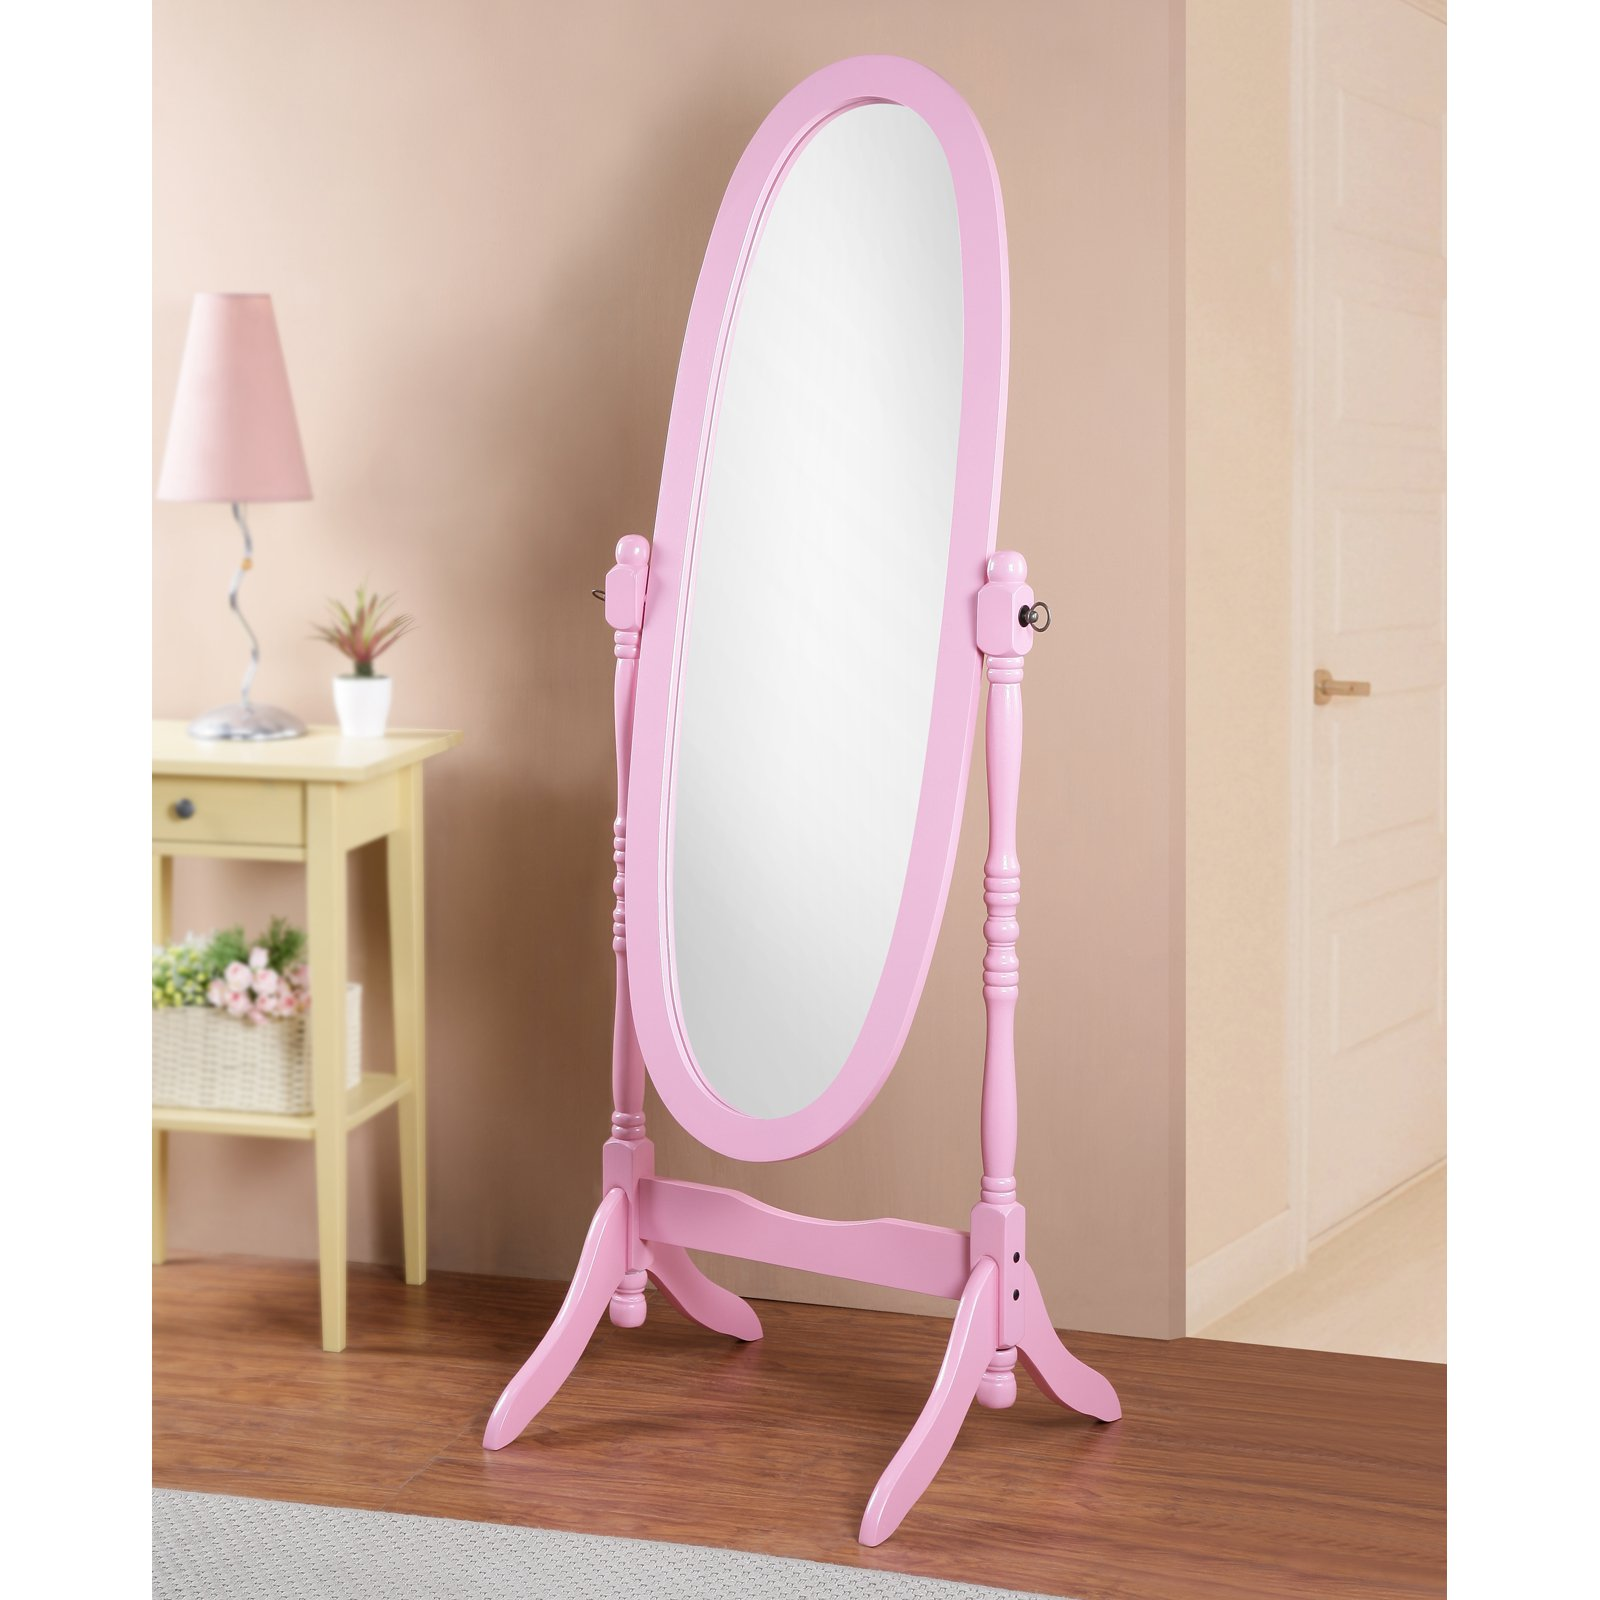 Roundhill Traditional Queen Anna Style Wood Floor Cheval Mirror, Oak Finish